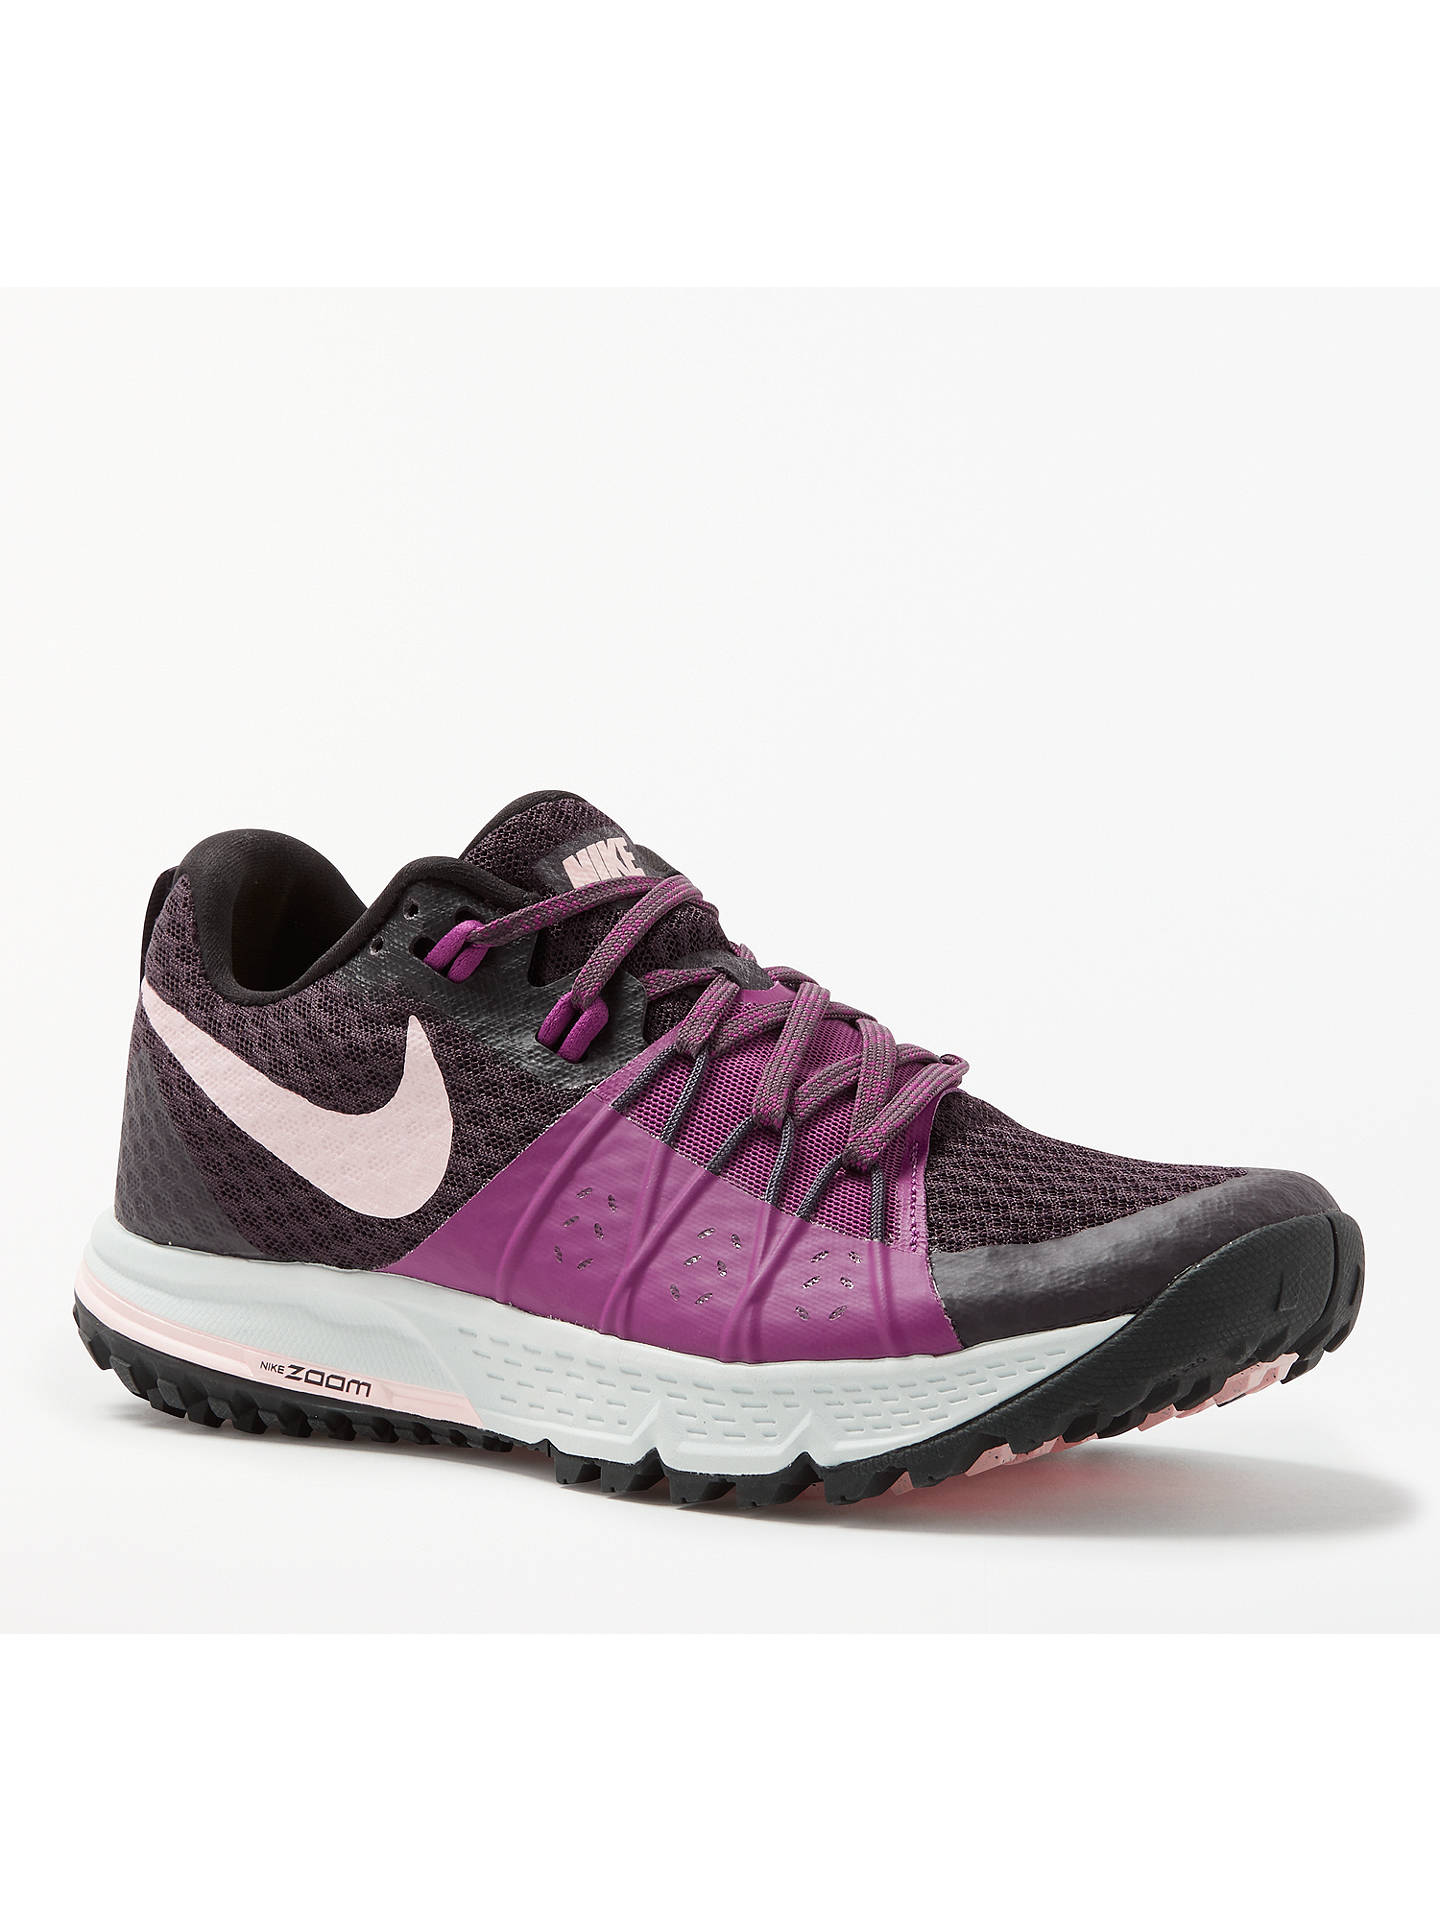 f88145f57d7 Nike Air Zoom Wildhorse 4 Women s Running Shoes at John Lewis   Partners